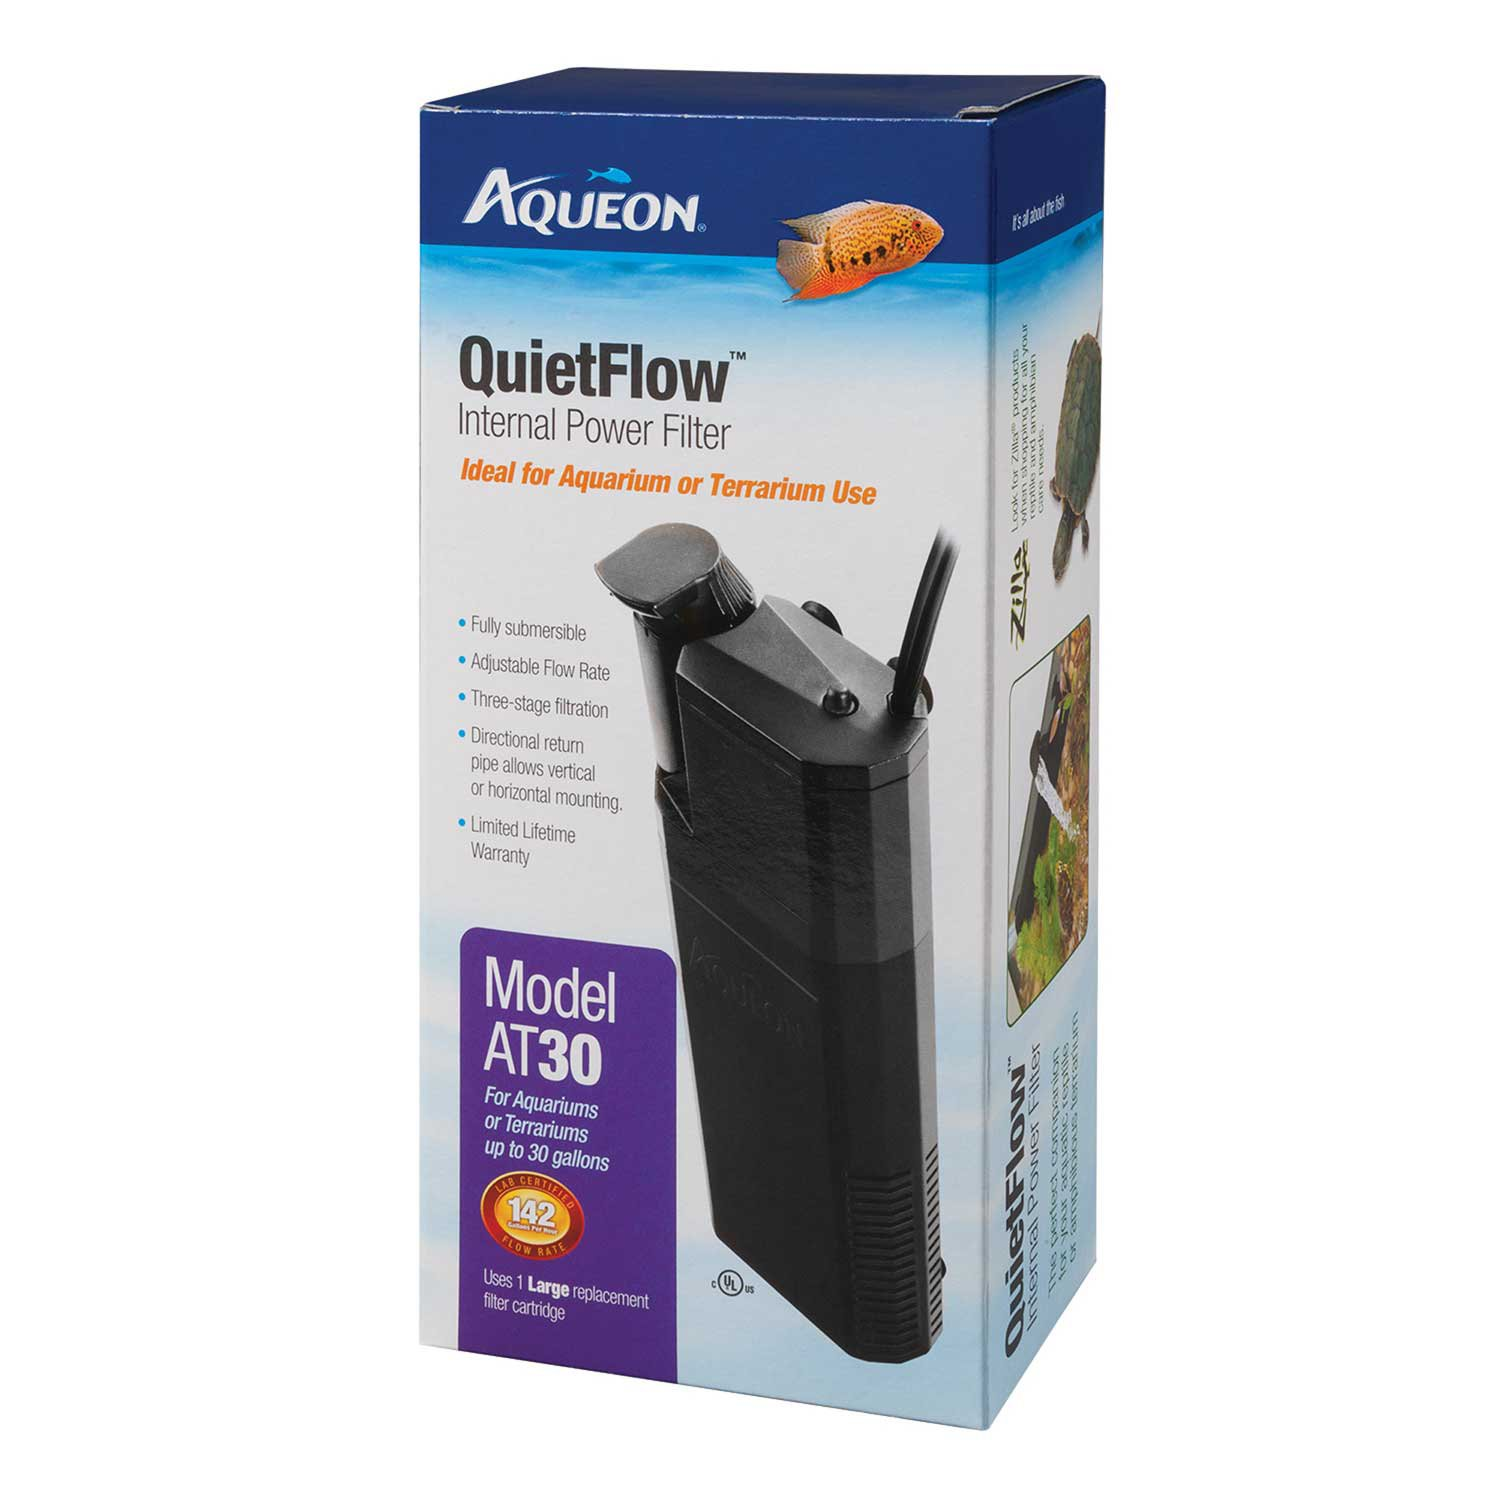 Aqueon quietflow 30 internal power filter petco for Petco fish tank filters